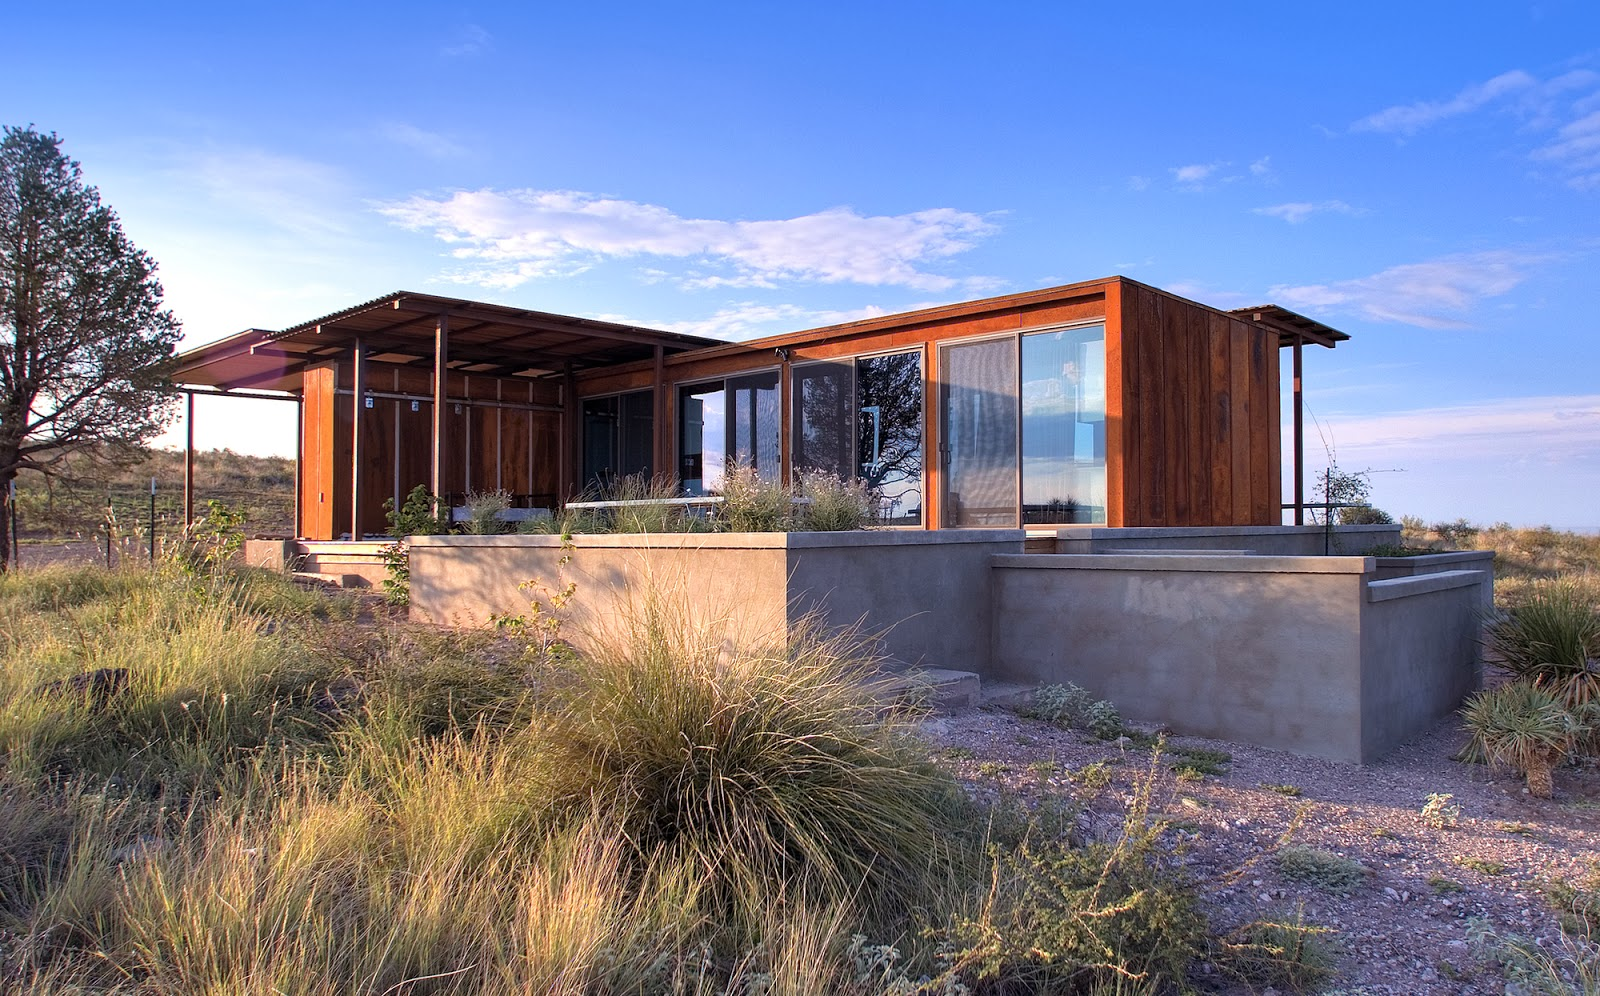 Real life is elsewhere marfa weehouse for Home architects